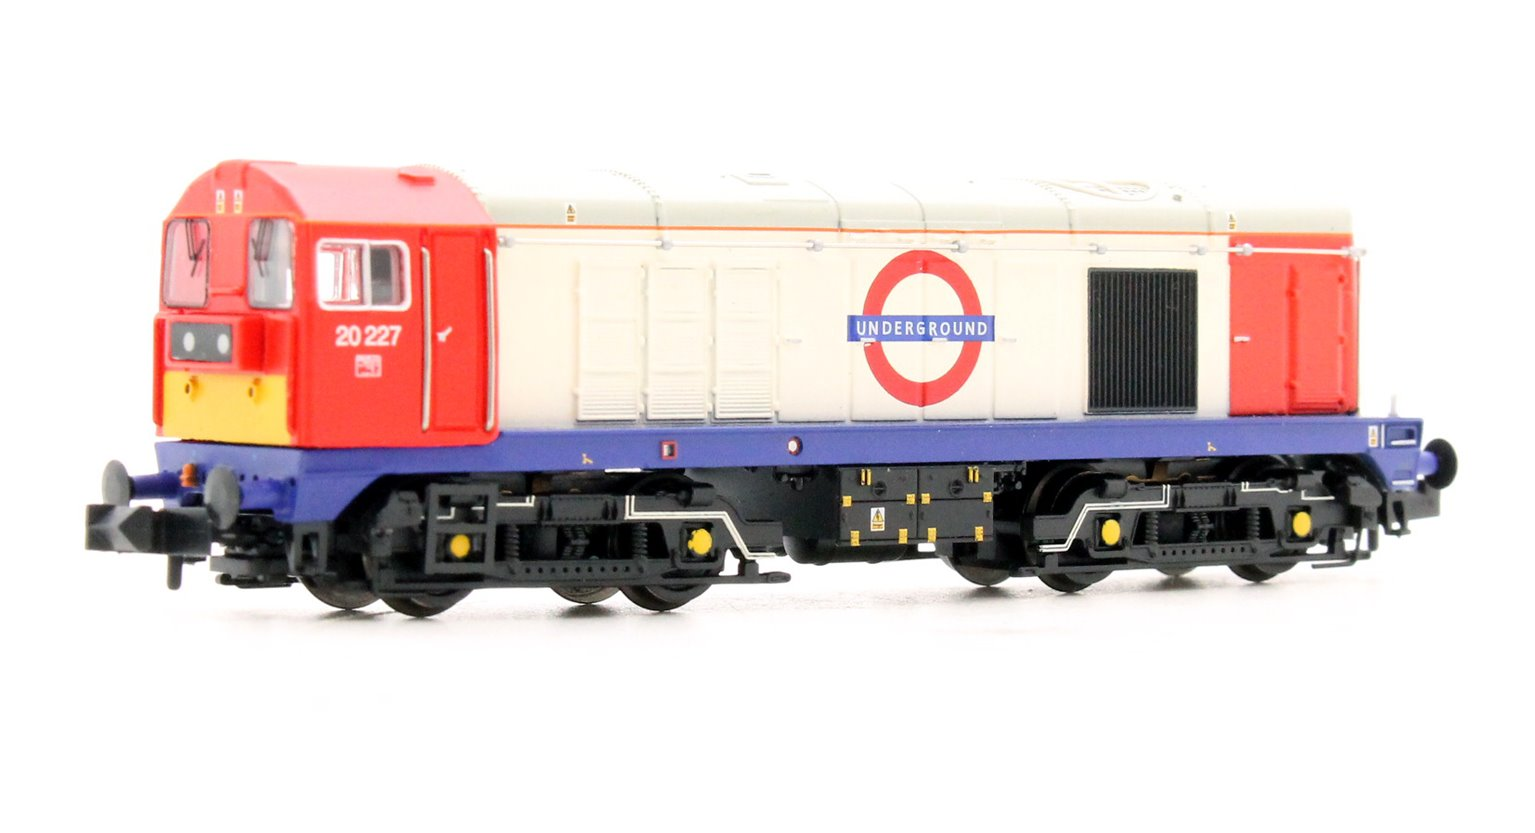 Class 20 227 London Underground Diesel Locomotive